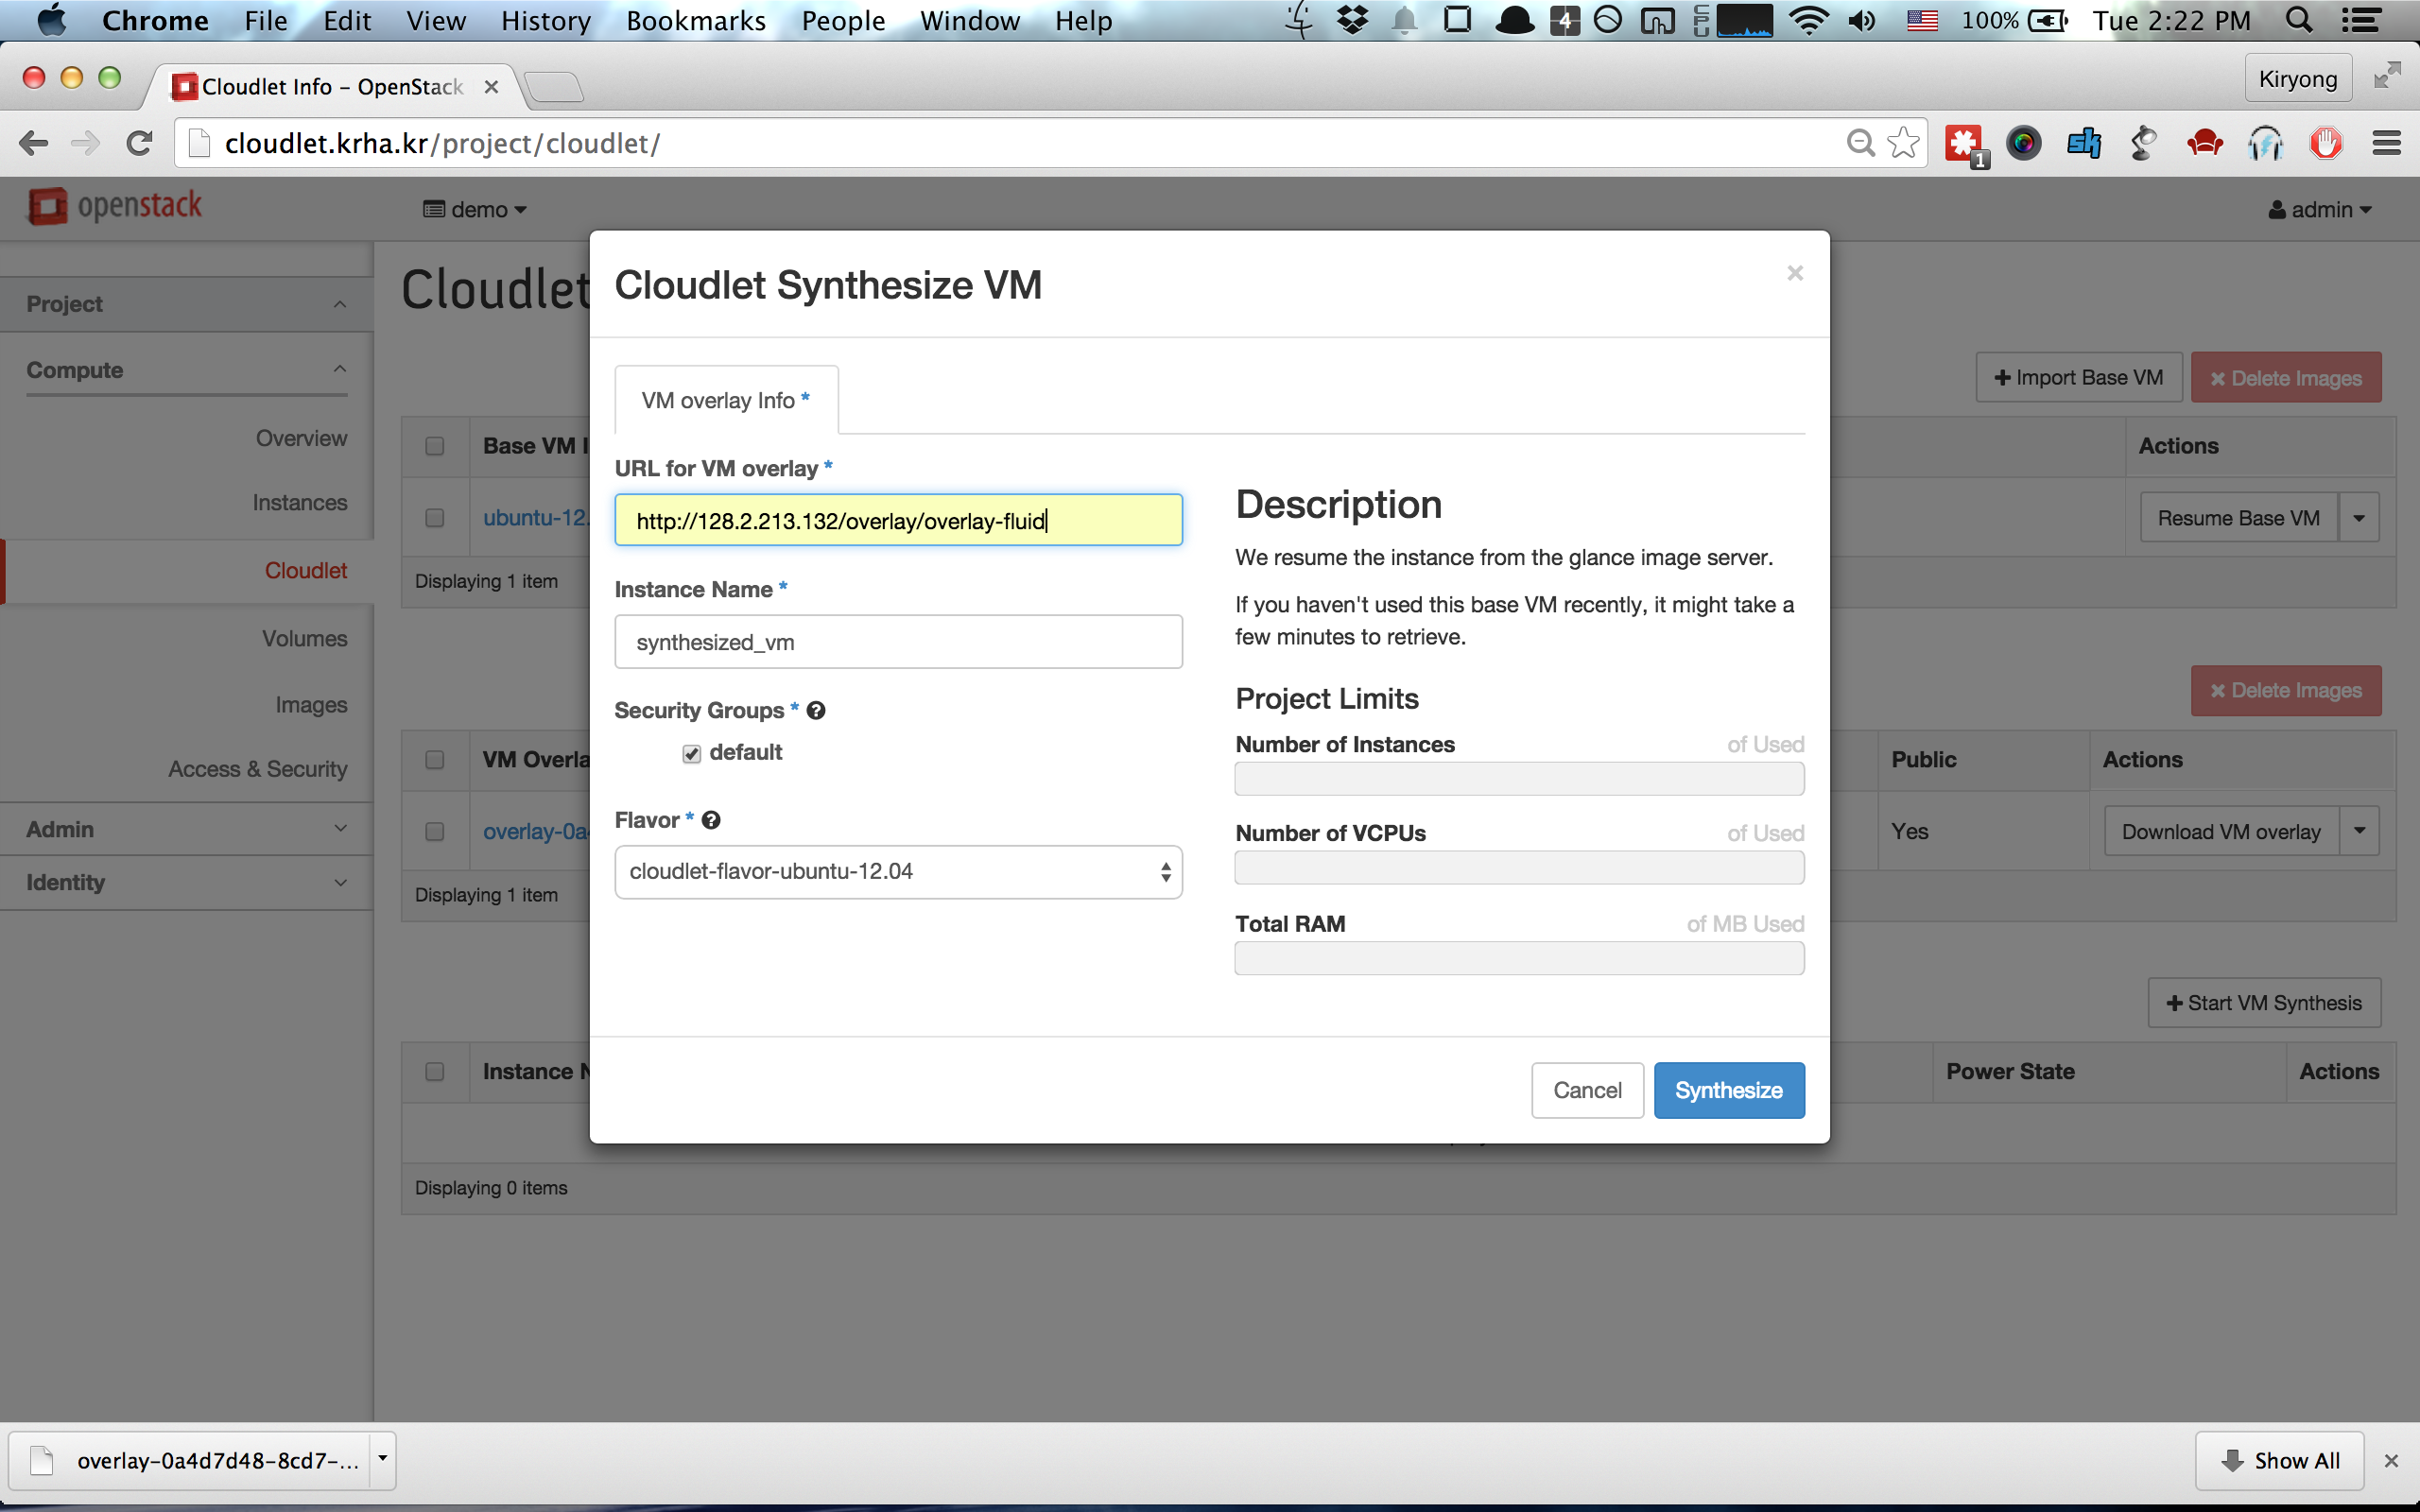 Start VM Synthesis